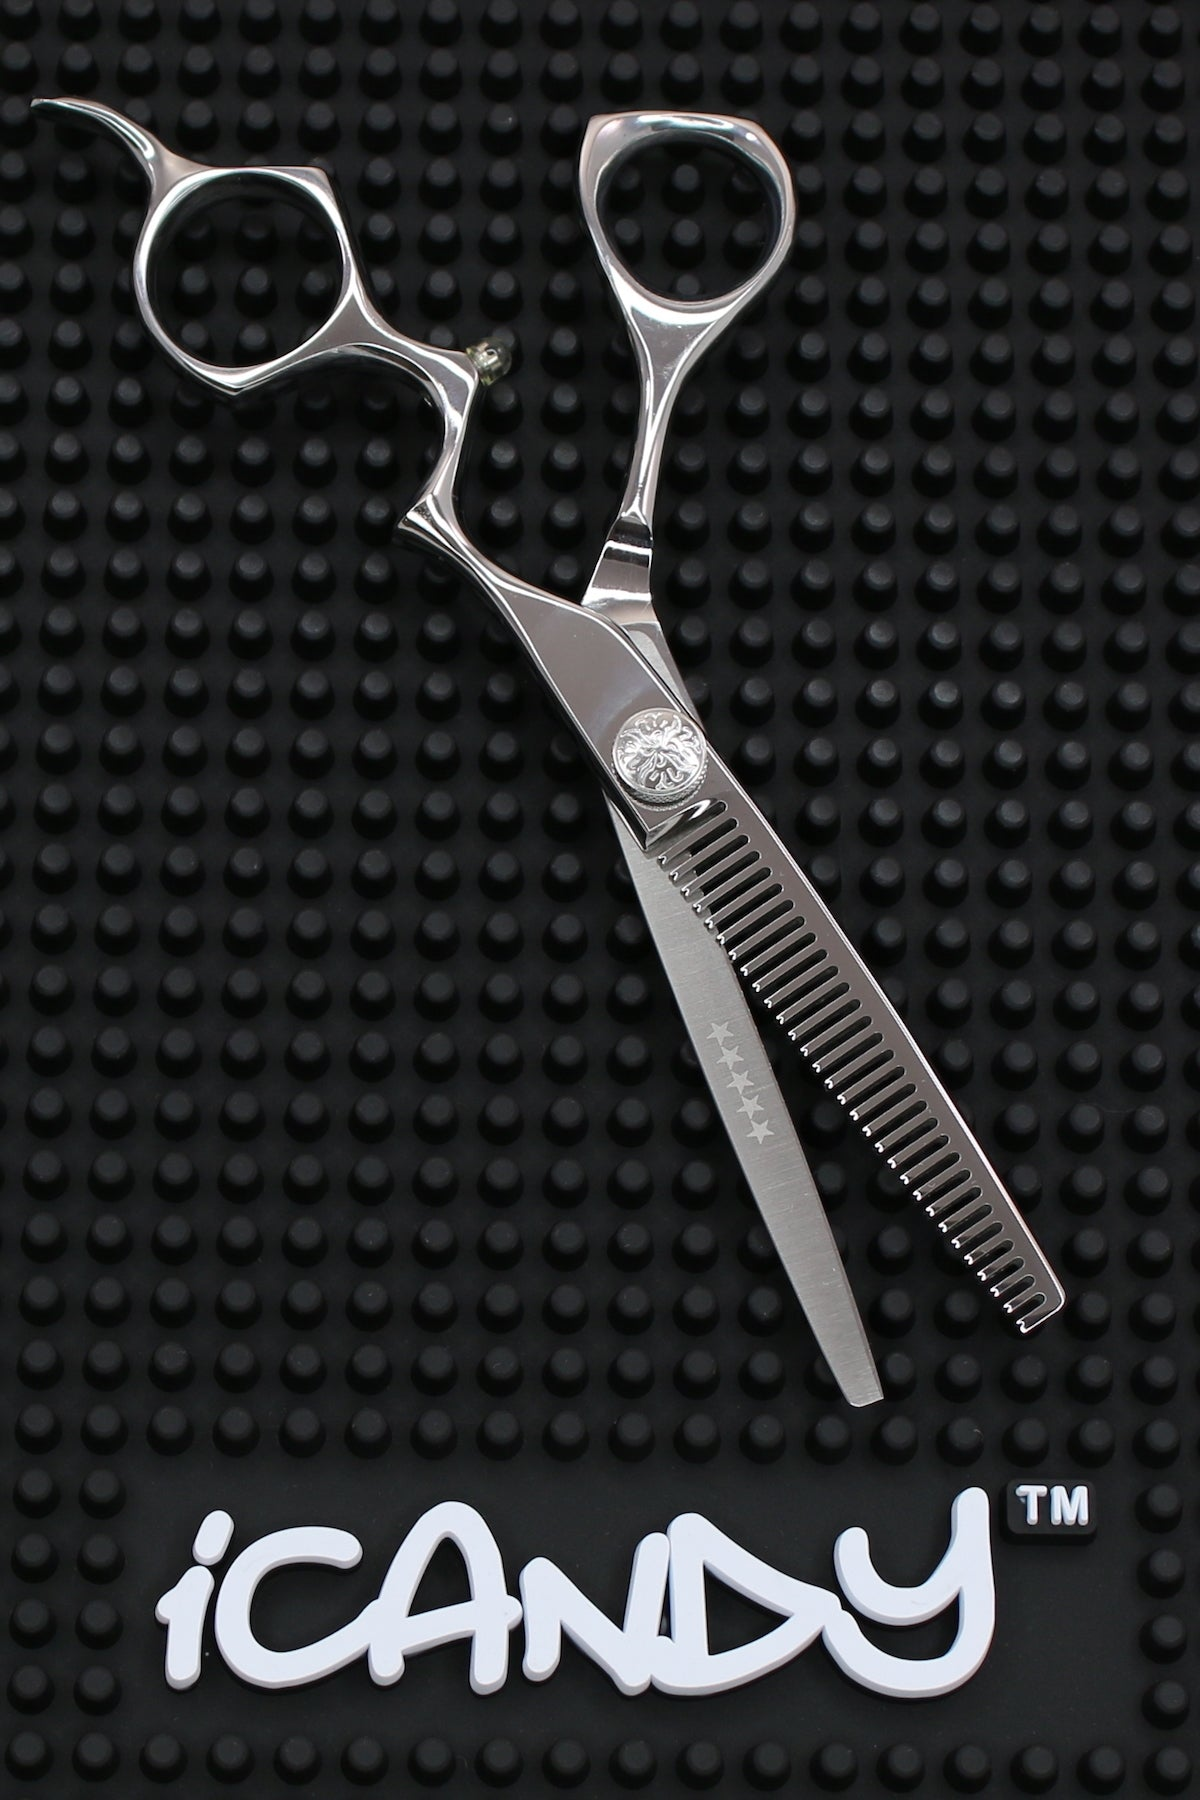 iCandy Goddess Athena-CT Thinning Scissors (6 inch) - iCandy Scissors